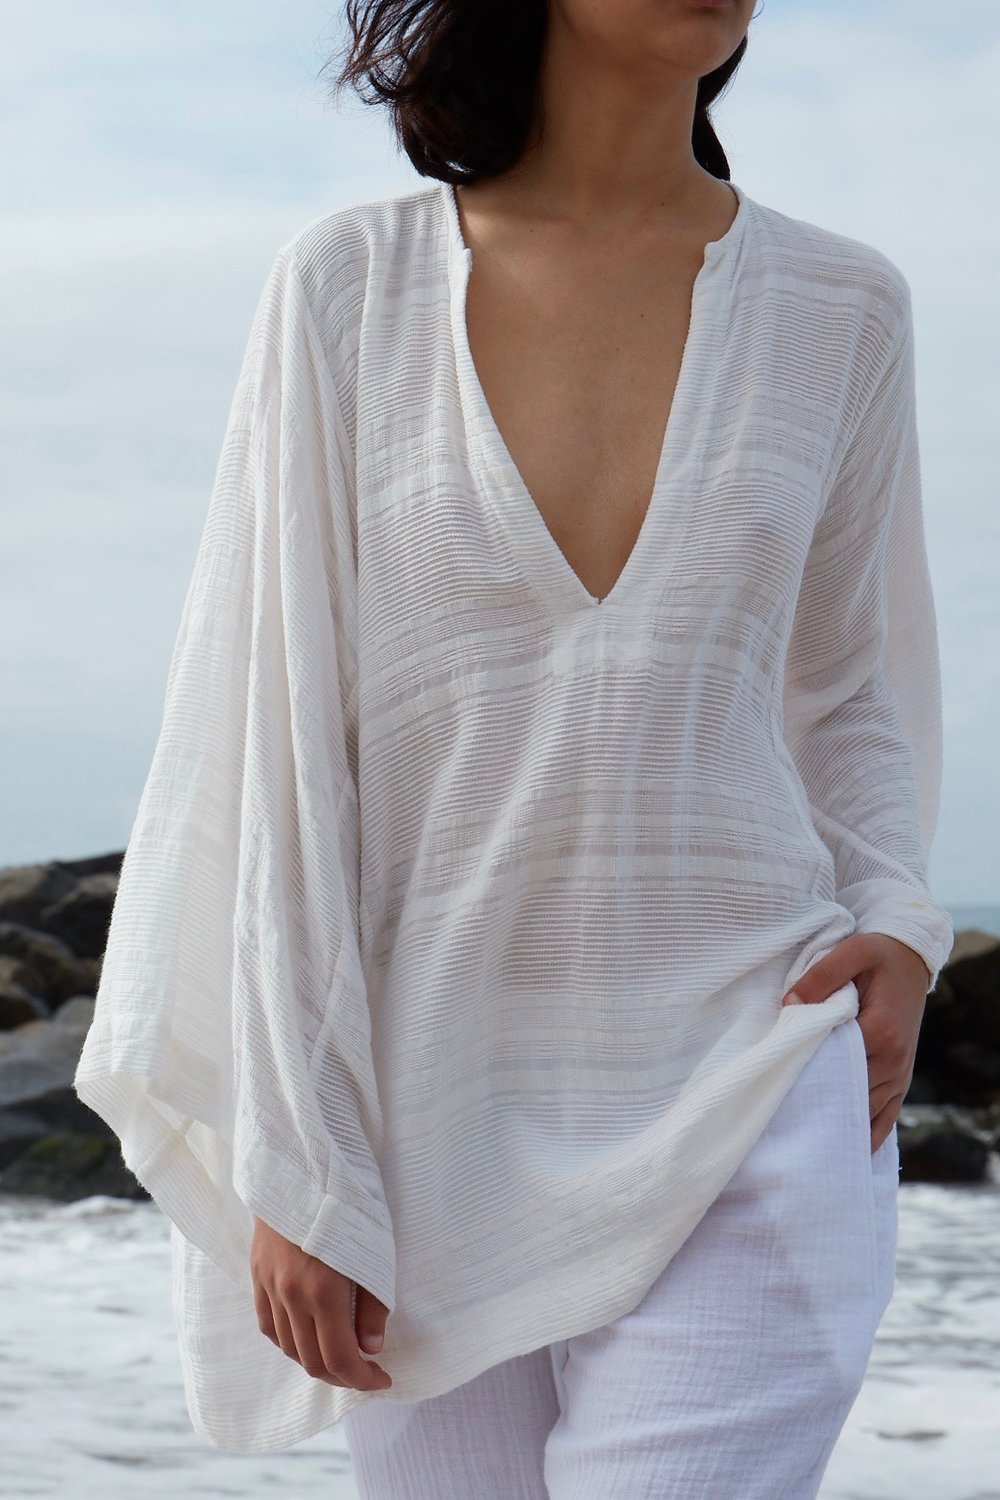 Perwana wears the  Sunday Caftan Short  in Creme and the gauze  Resort Pant.